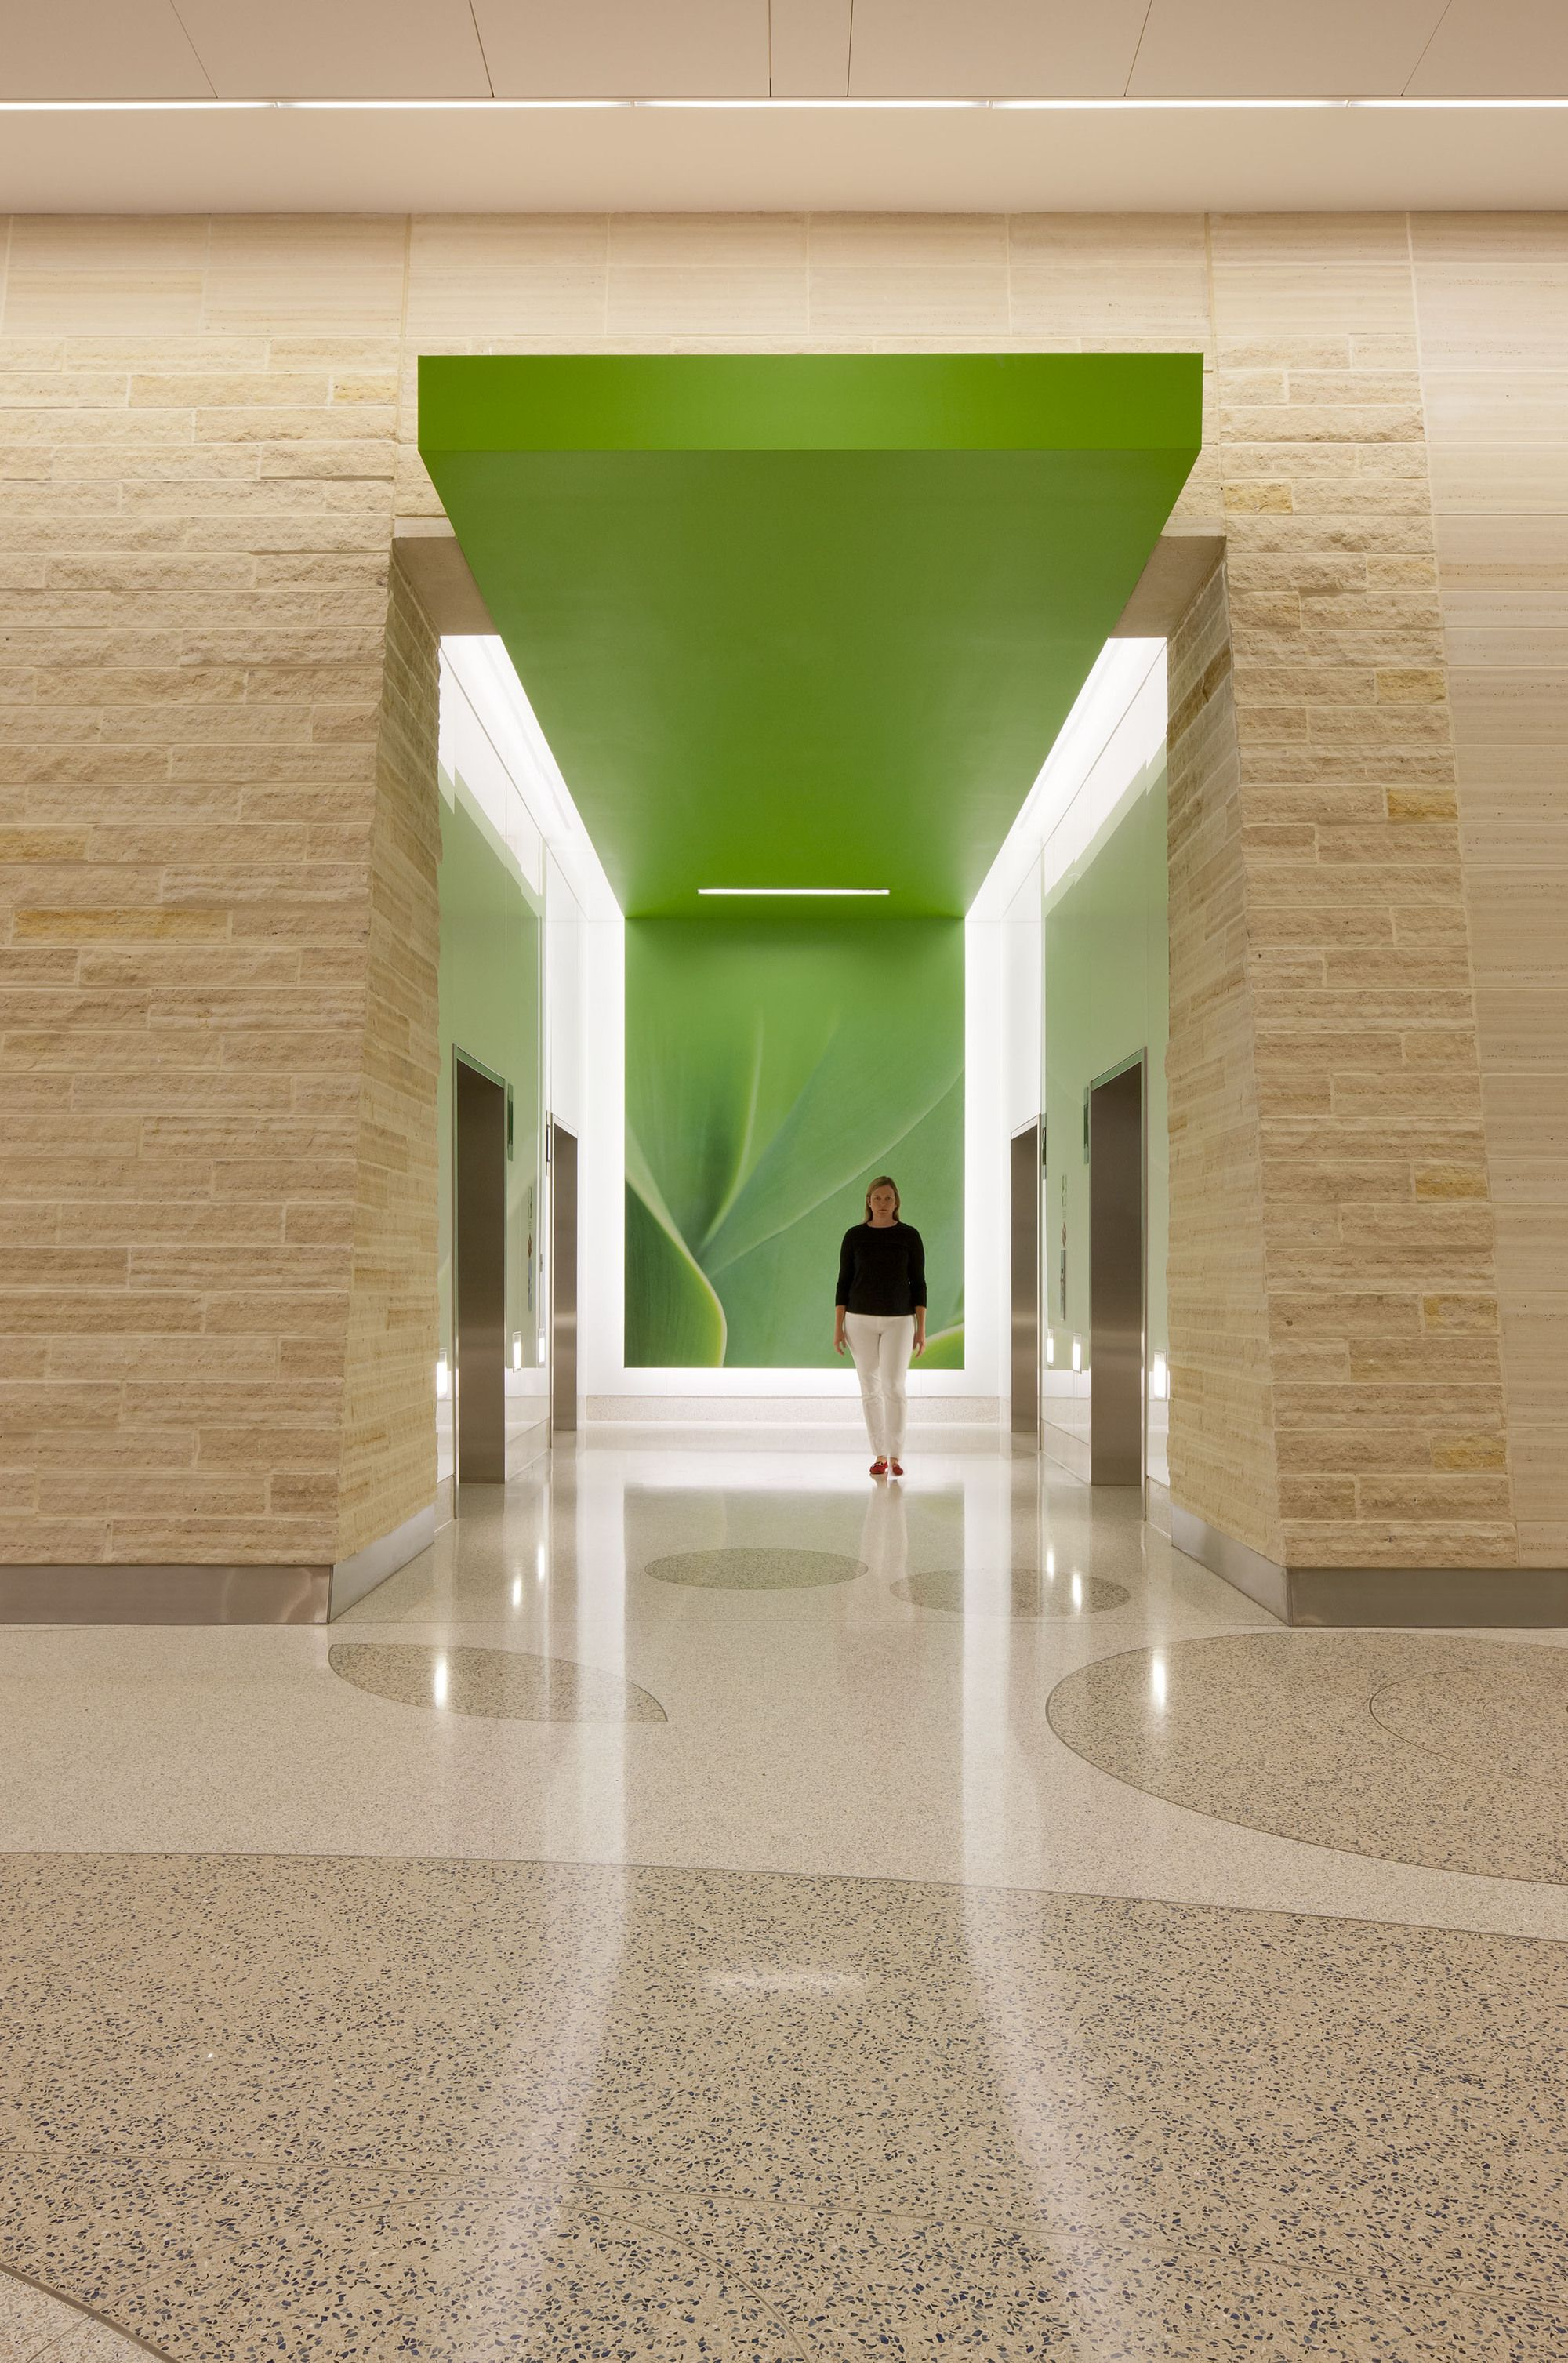 Neumors Childrens Hospital elevator lobby | Pediatrics ...